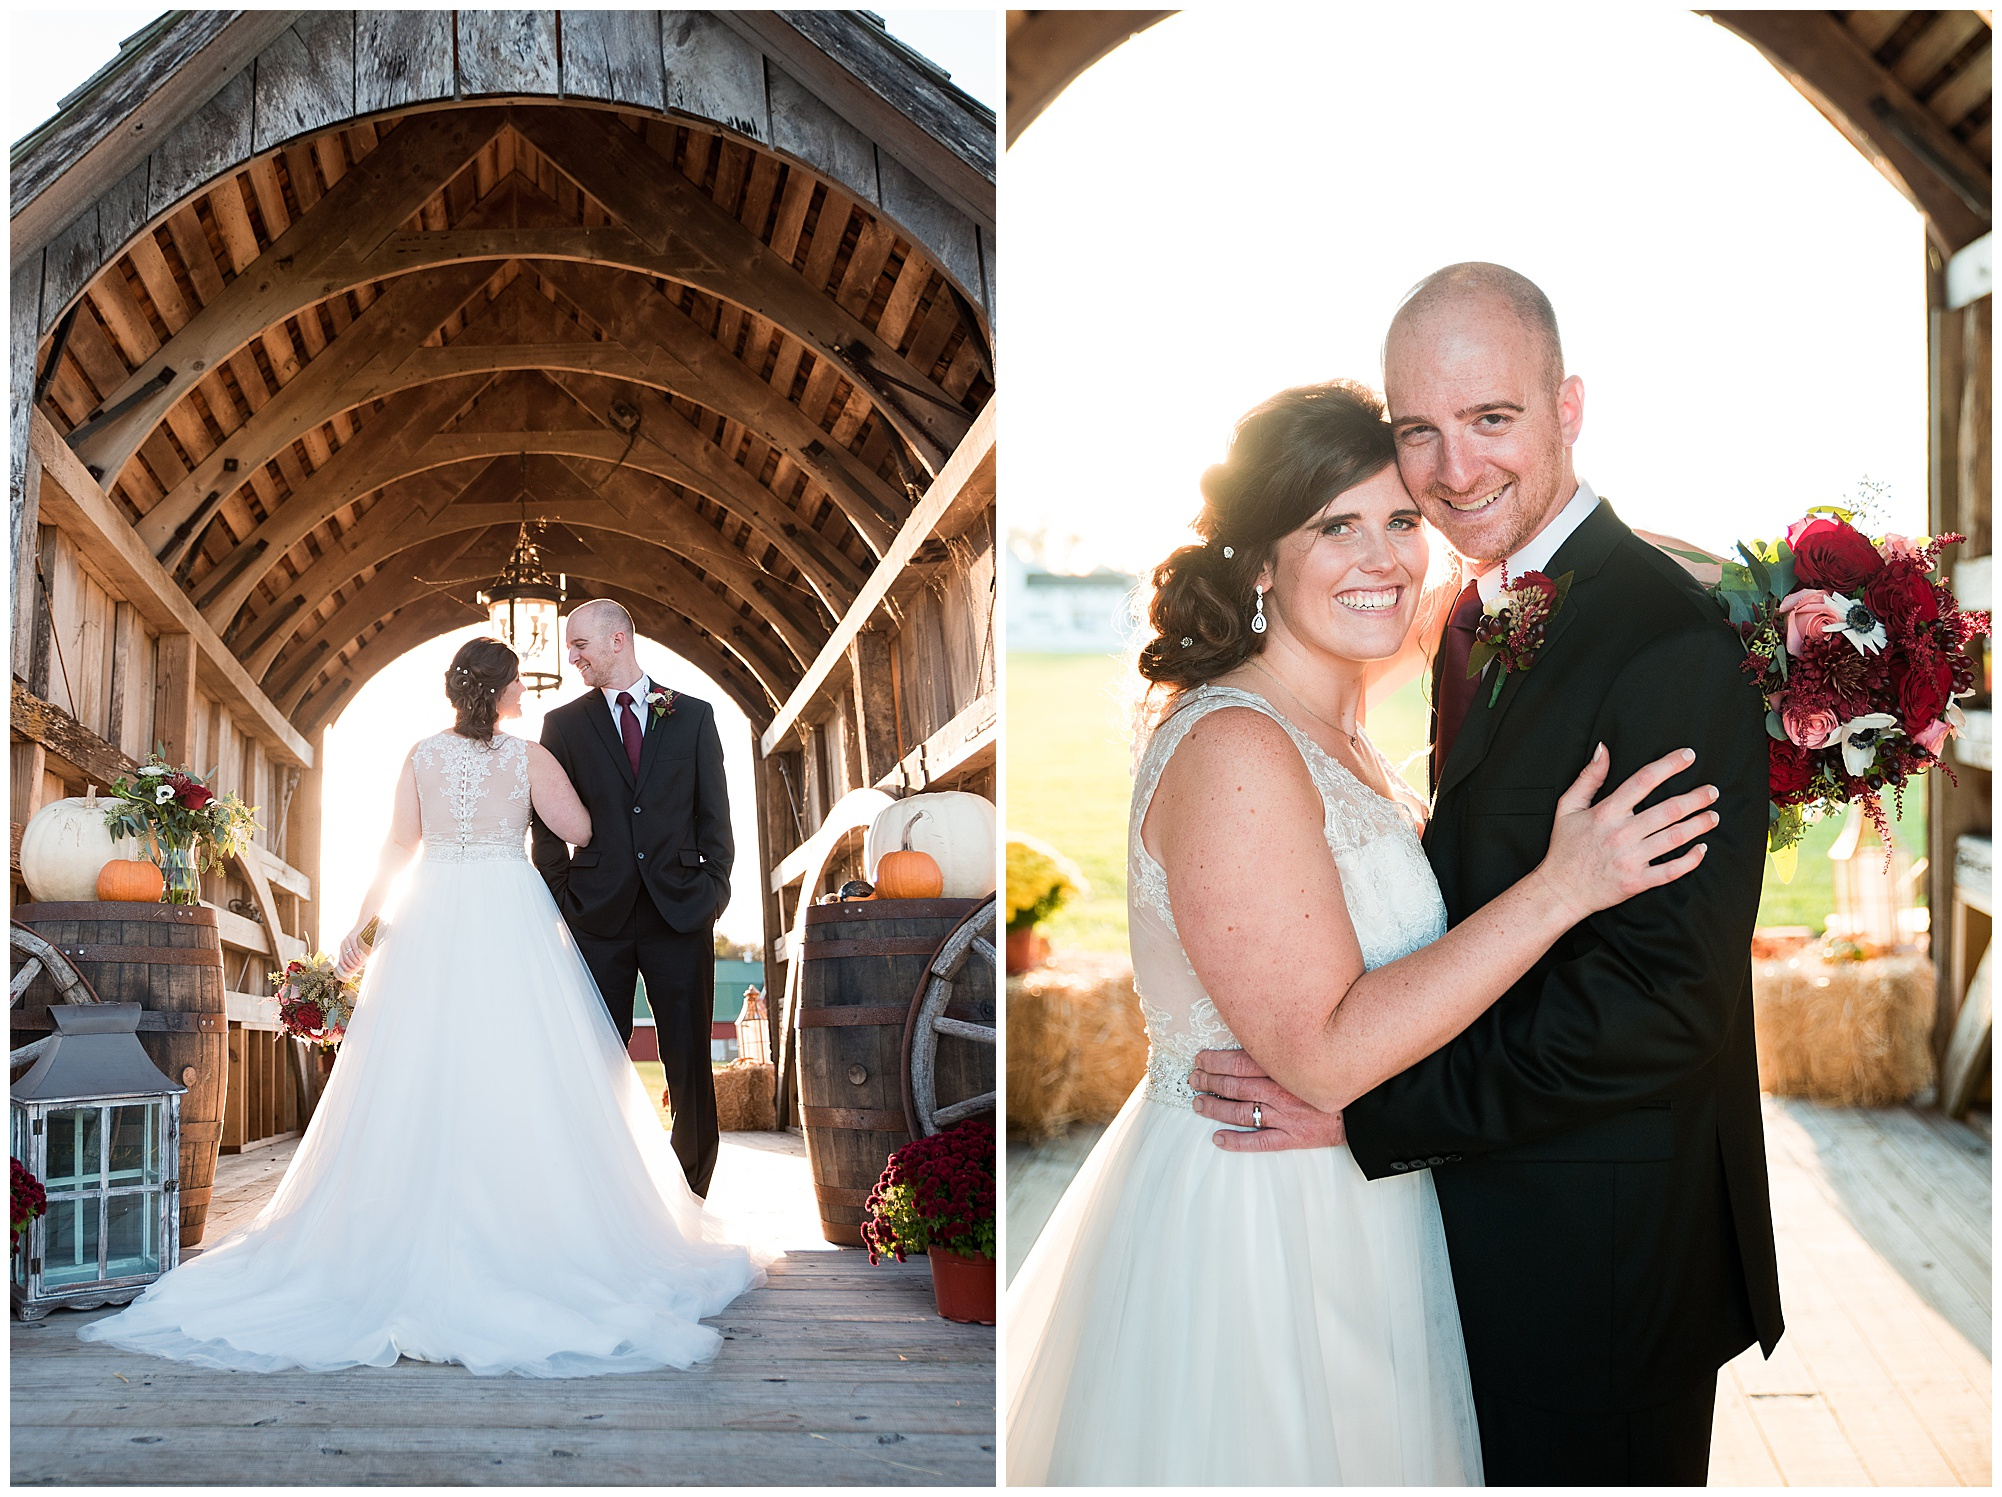 wedding photos outdoors at covered bridge inn in lewes delaware. historic wedding barn venue on the eastern shore. fall wedding in november with rustic decor theme.